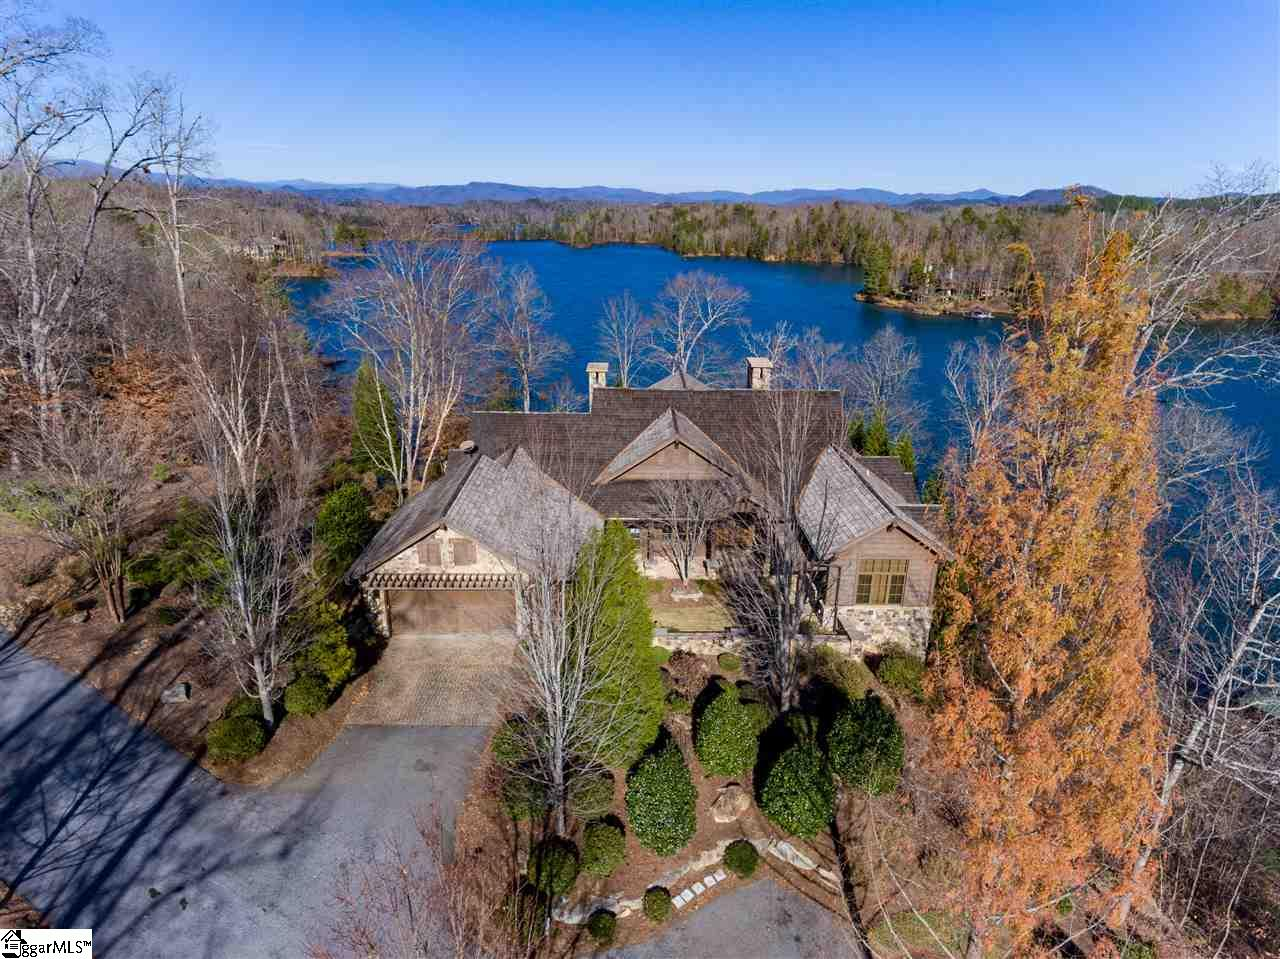 Check out this Exclusive Luxury Water Front Estate on Beautiful Lake Keowee. The setting is one of the finest available on Lake Keowee showcasing expansive lake and mountain views. Bring your boat to this awesome Home as it includes a covered boat dock with a lift. A stone fireplace anchors one end of the spacious great room, with the other open to the kitchen area. This home features a bunk room which will sleep 8! Hurry and call today to schedule your private showing of this incredible home! Don't miss out on this amazing opportunity on Lake Keowee! Cliffs Membership is available with access fee. Additional HOA for Falls Creek Section of Cliffs Falls South: $1,750 per quarter covering painting/staining of homes every 3 years, gutter cleaning, front yard landscape upkeep and mulching, vacant lots maintained. All measurements and numerical representations to be verified by the Buyer and/or Buyer's agent if this information is important to the purchase decision.